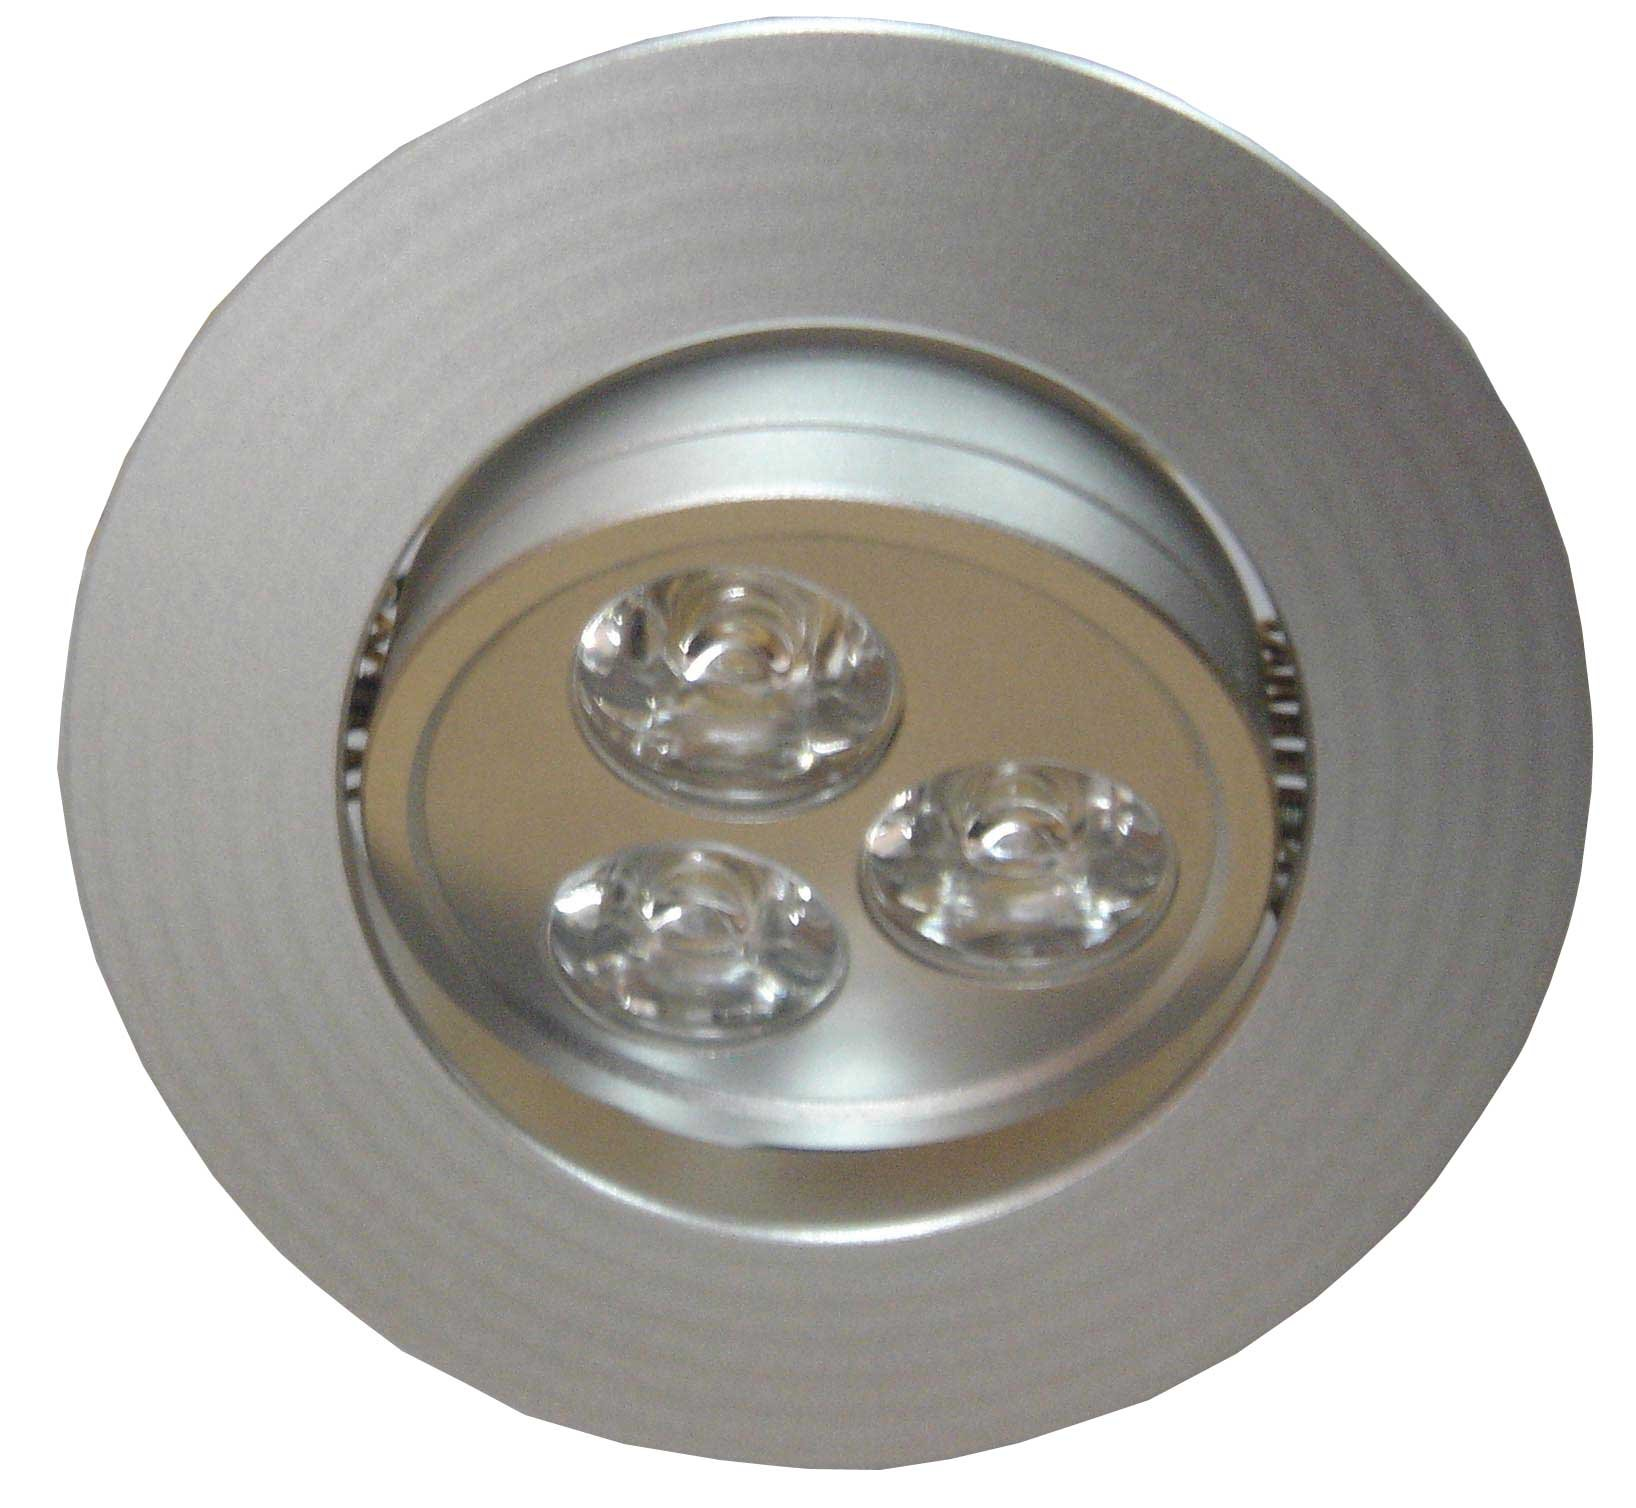 Hy 380 led puck light buy led product on alibaba mozeypictures Gallery